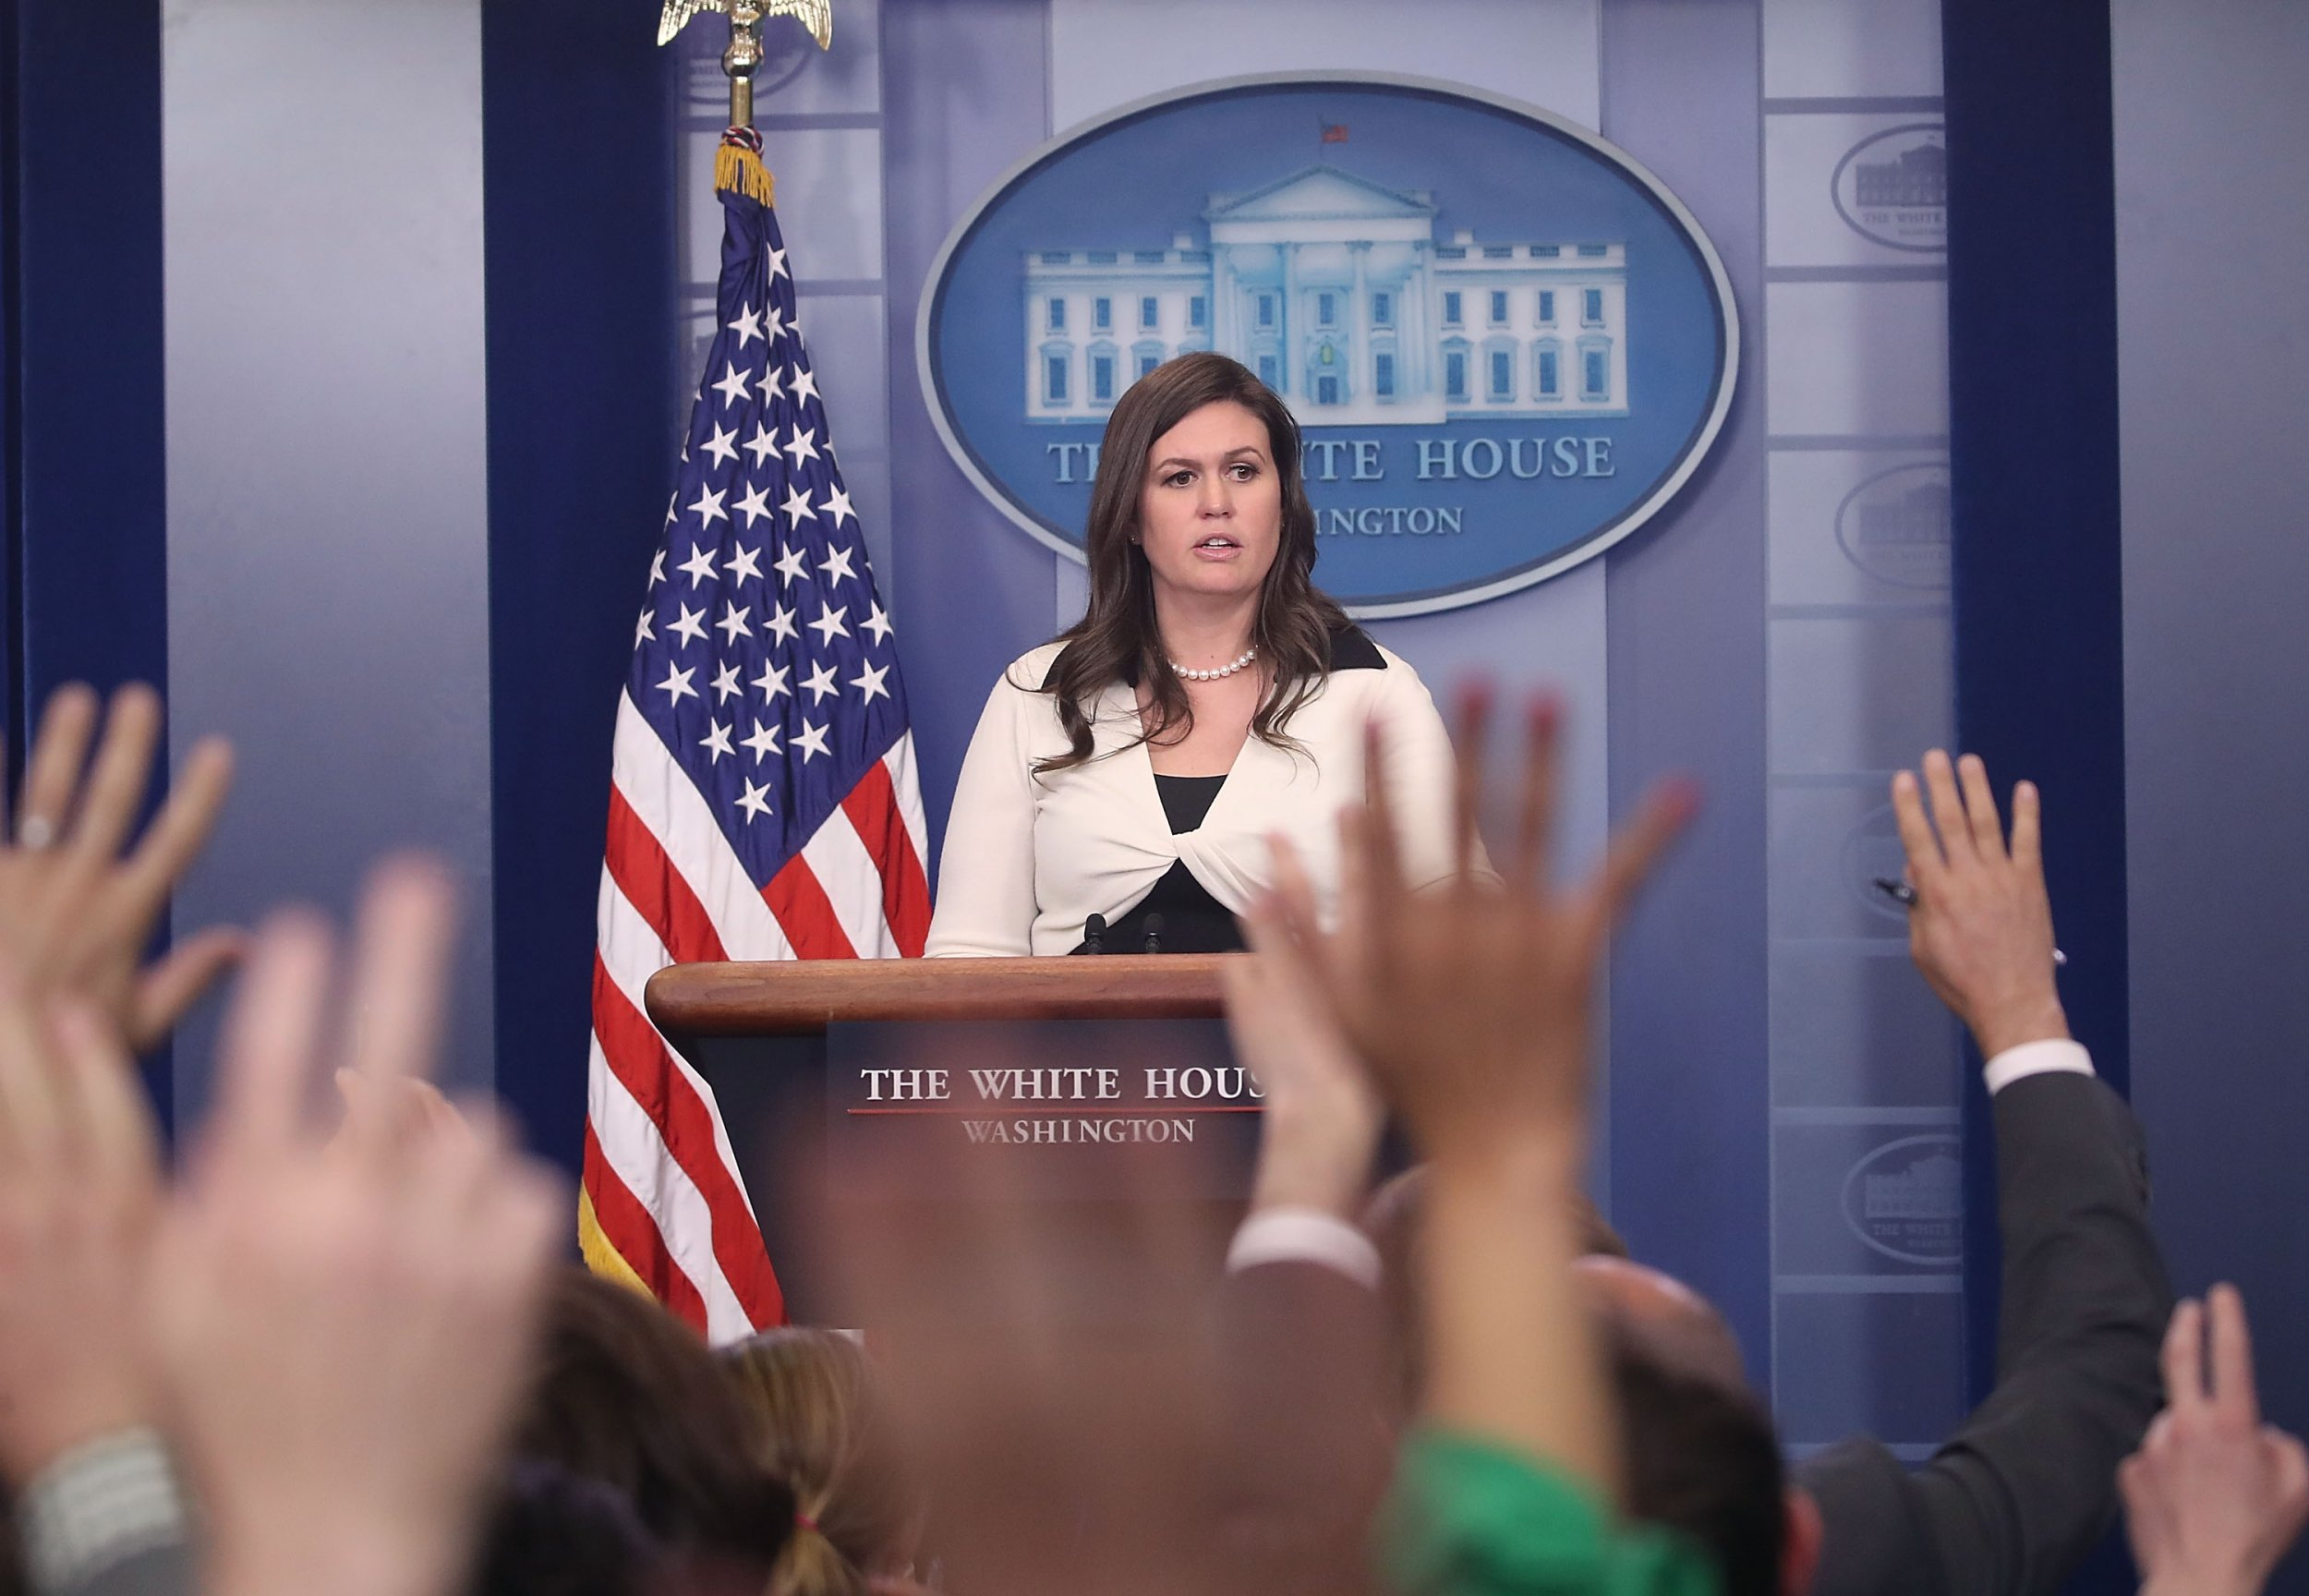 Meet Sarah Huckabee Sanders, Trump's new spokeswoman who has long defended bombastic conservatives